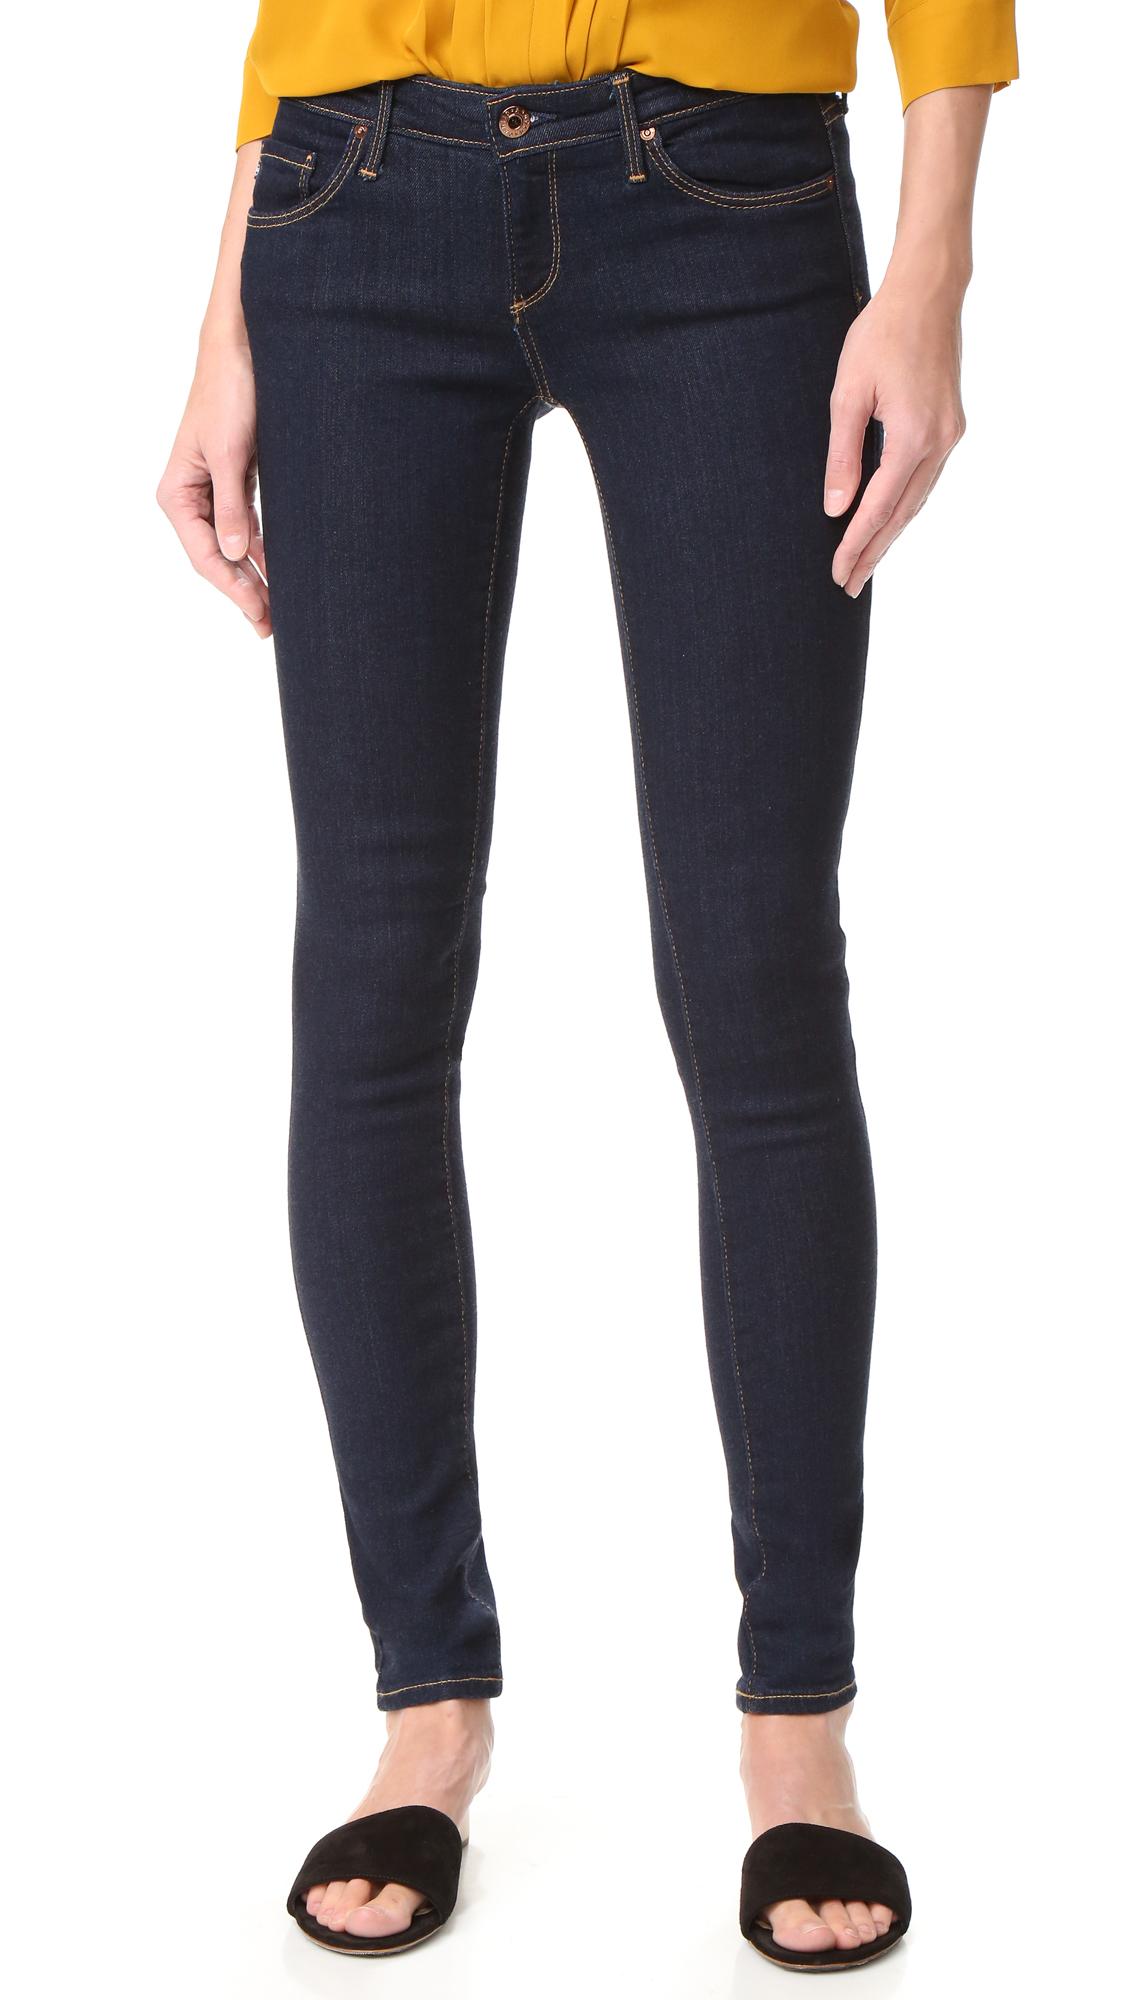 AG The Legging Jeans - Delight